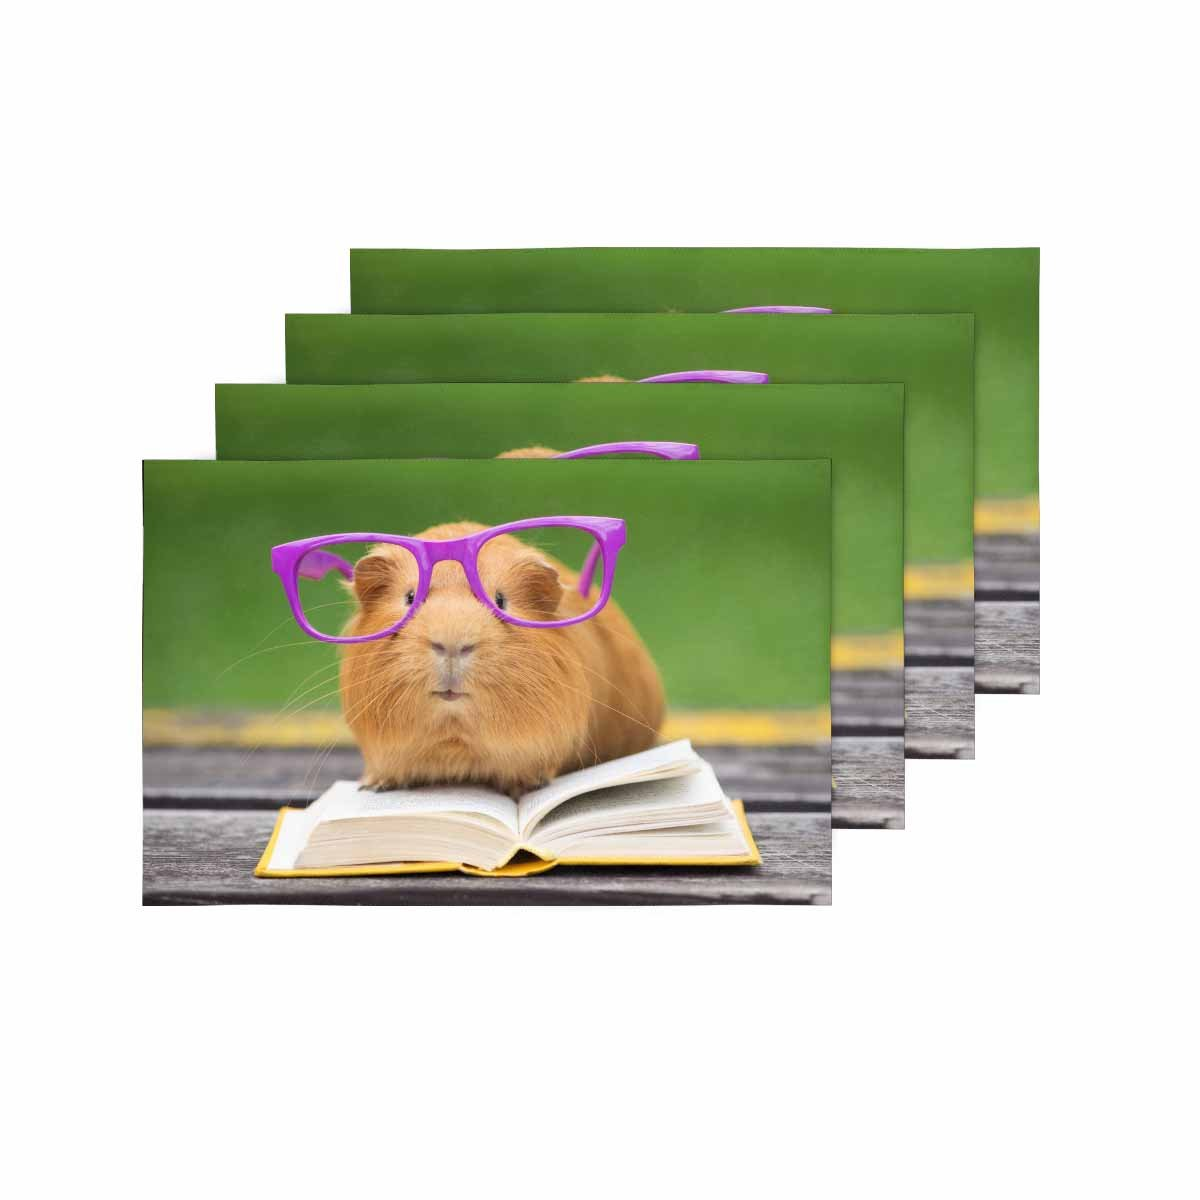 InterestPrint Funny Guinea Pig with Glasses Reading Book Kitchen Table Mats Placemats Set of 4, Cute Animal Place Mat for Dining Table Restaurant Home Decor 12''x18''